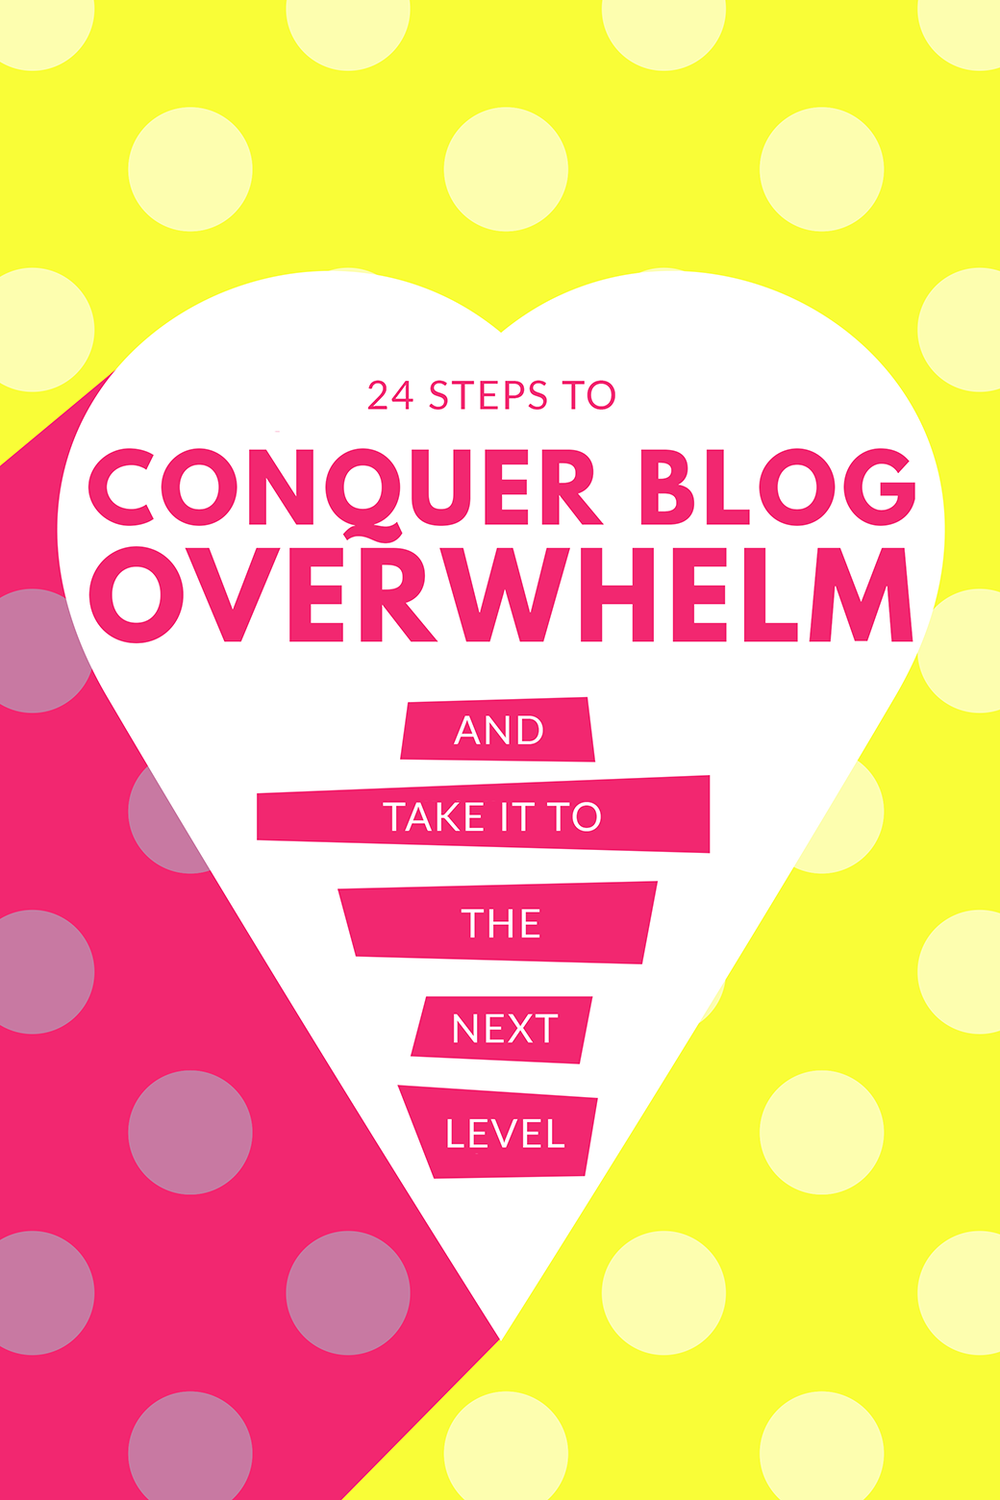 How to conquer BLOG OVERWHELM in 24 steps (+ freebies and resources to take your blog to the next level!)